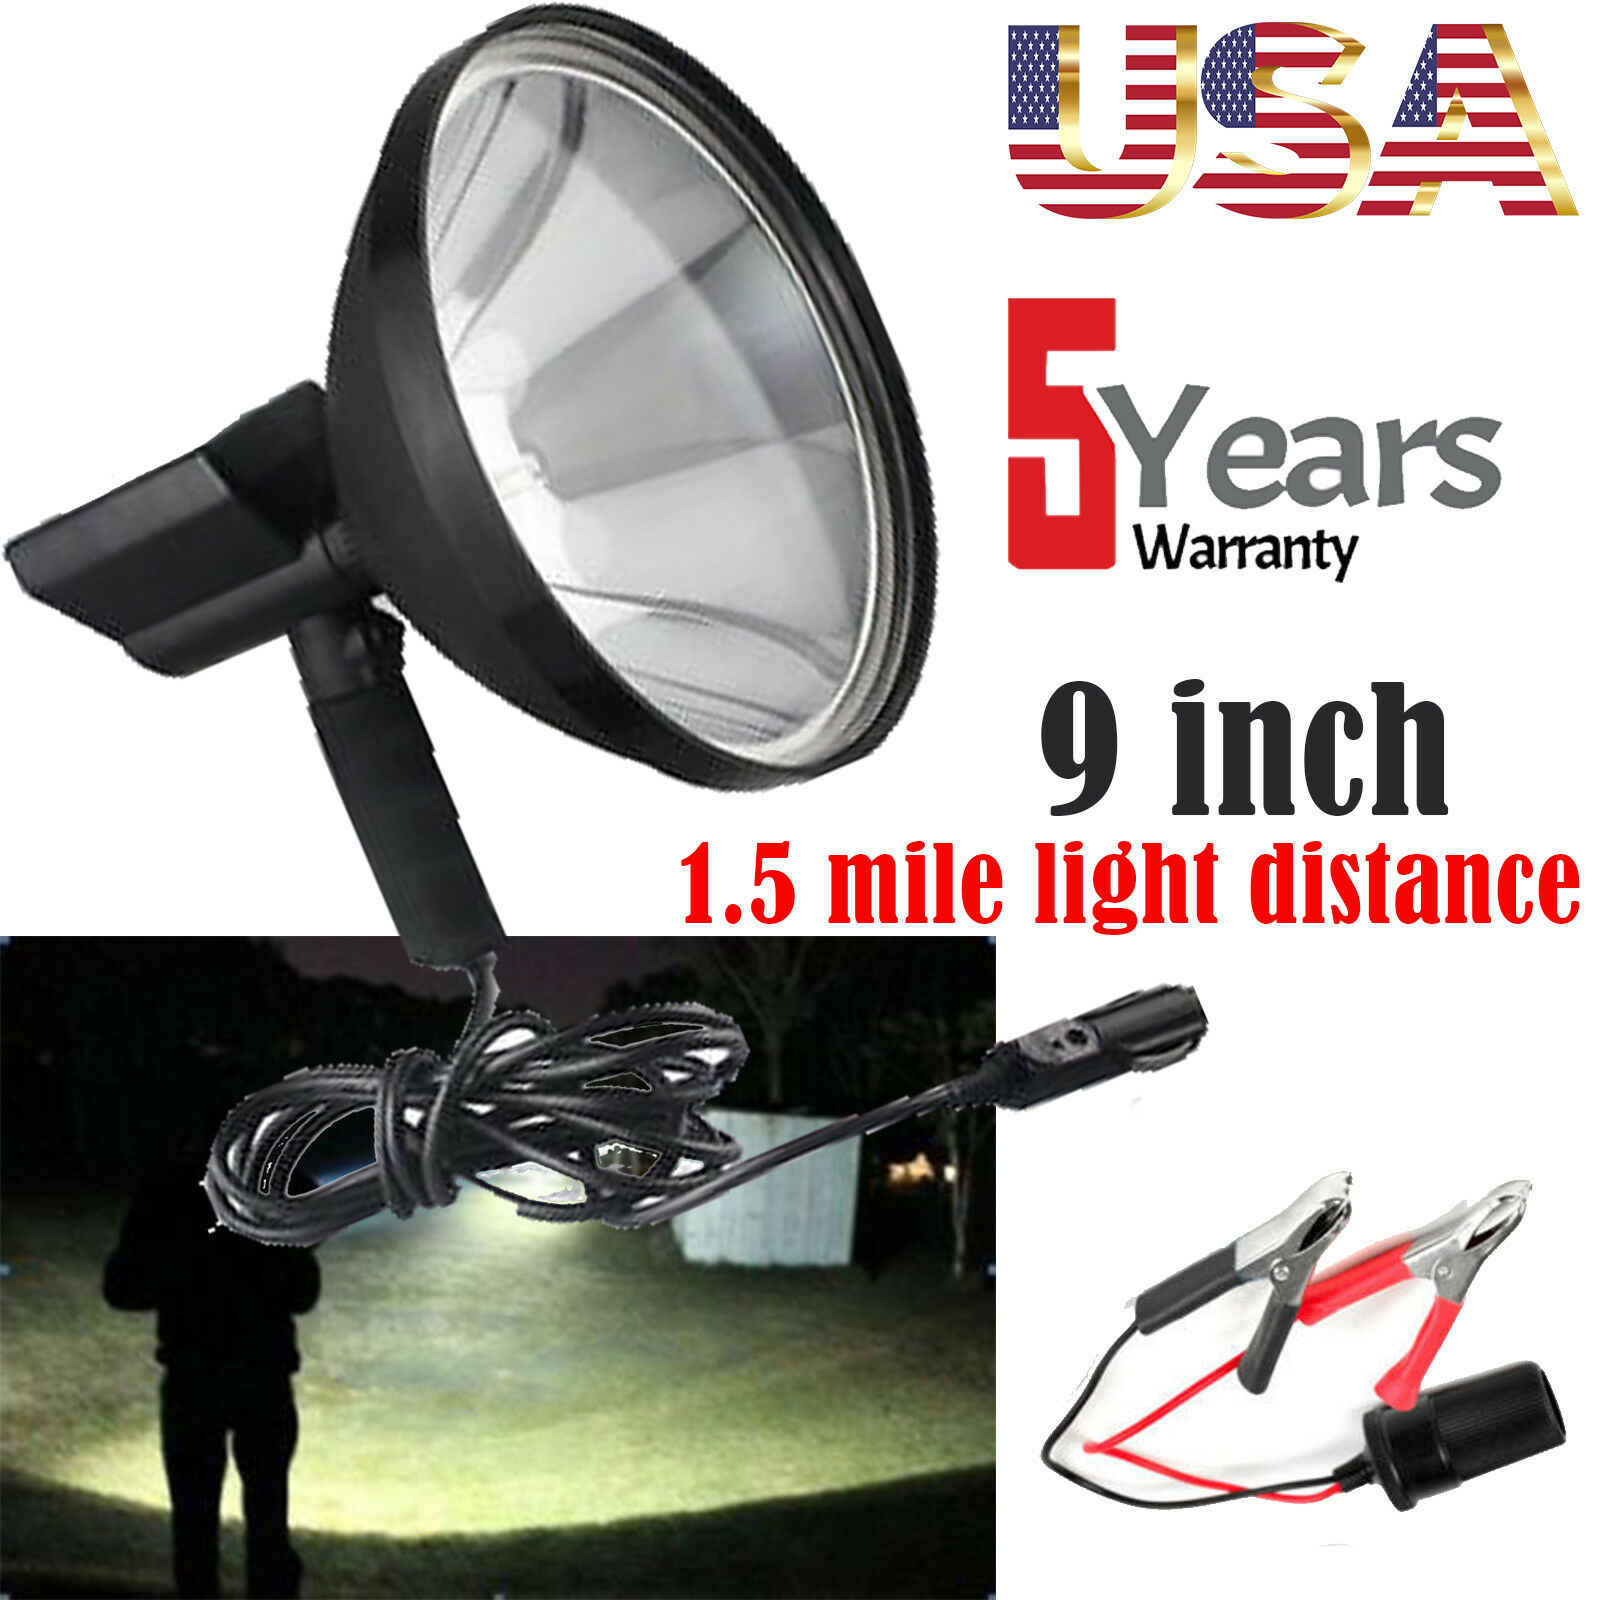 Hunting Light   12V Car Spotlight Handheld 9Inch 680W HID + Blattery Clip 6000K  high quality & fast shipping